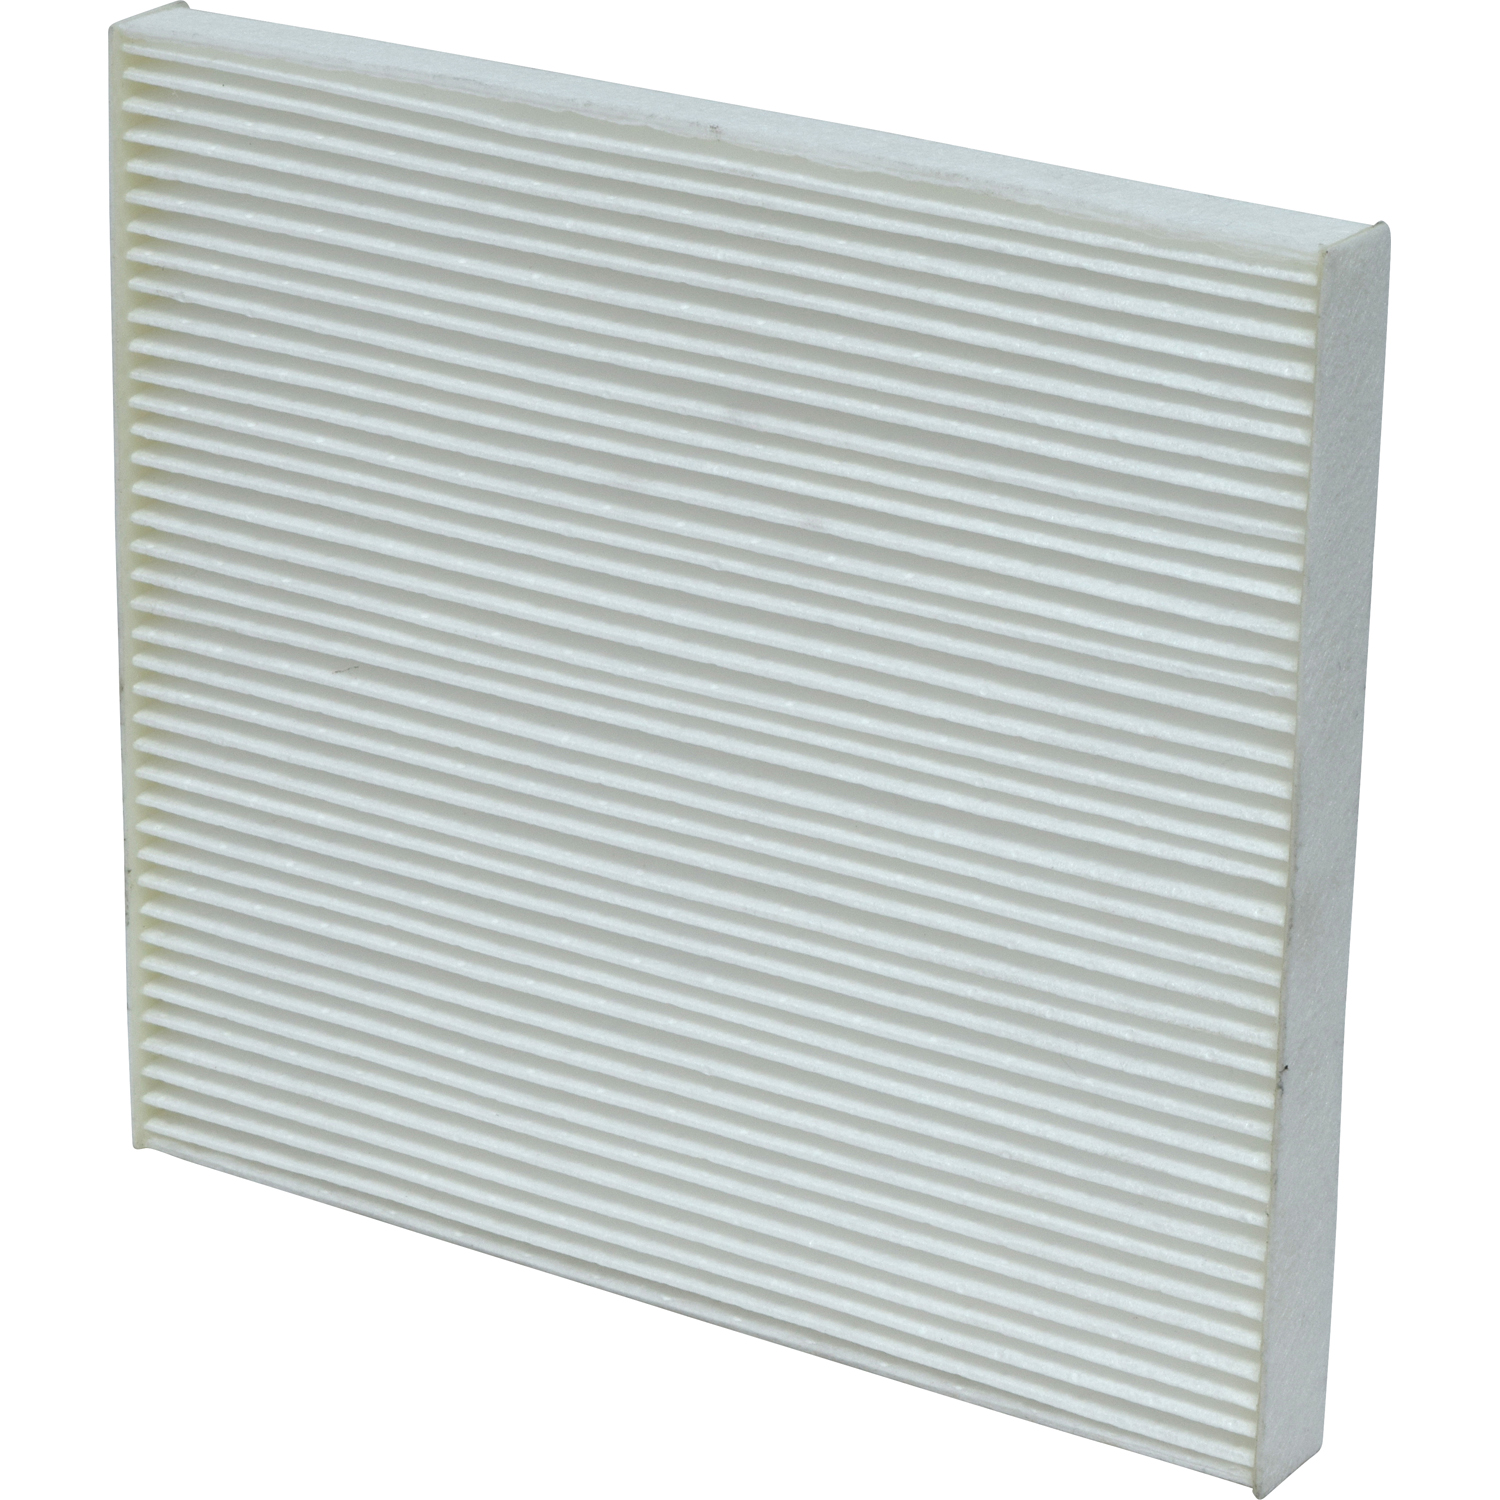 Particulate Cabin Air Filter TOY MAT 1.8L 05-03